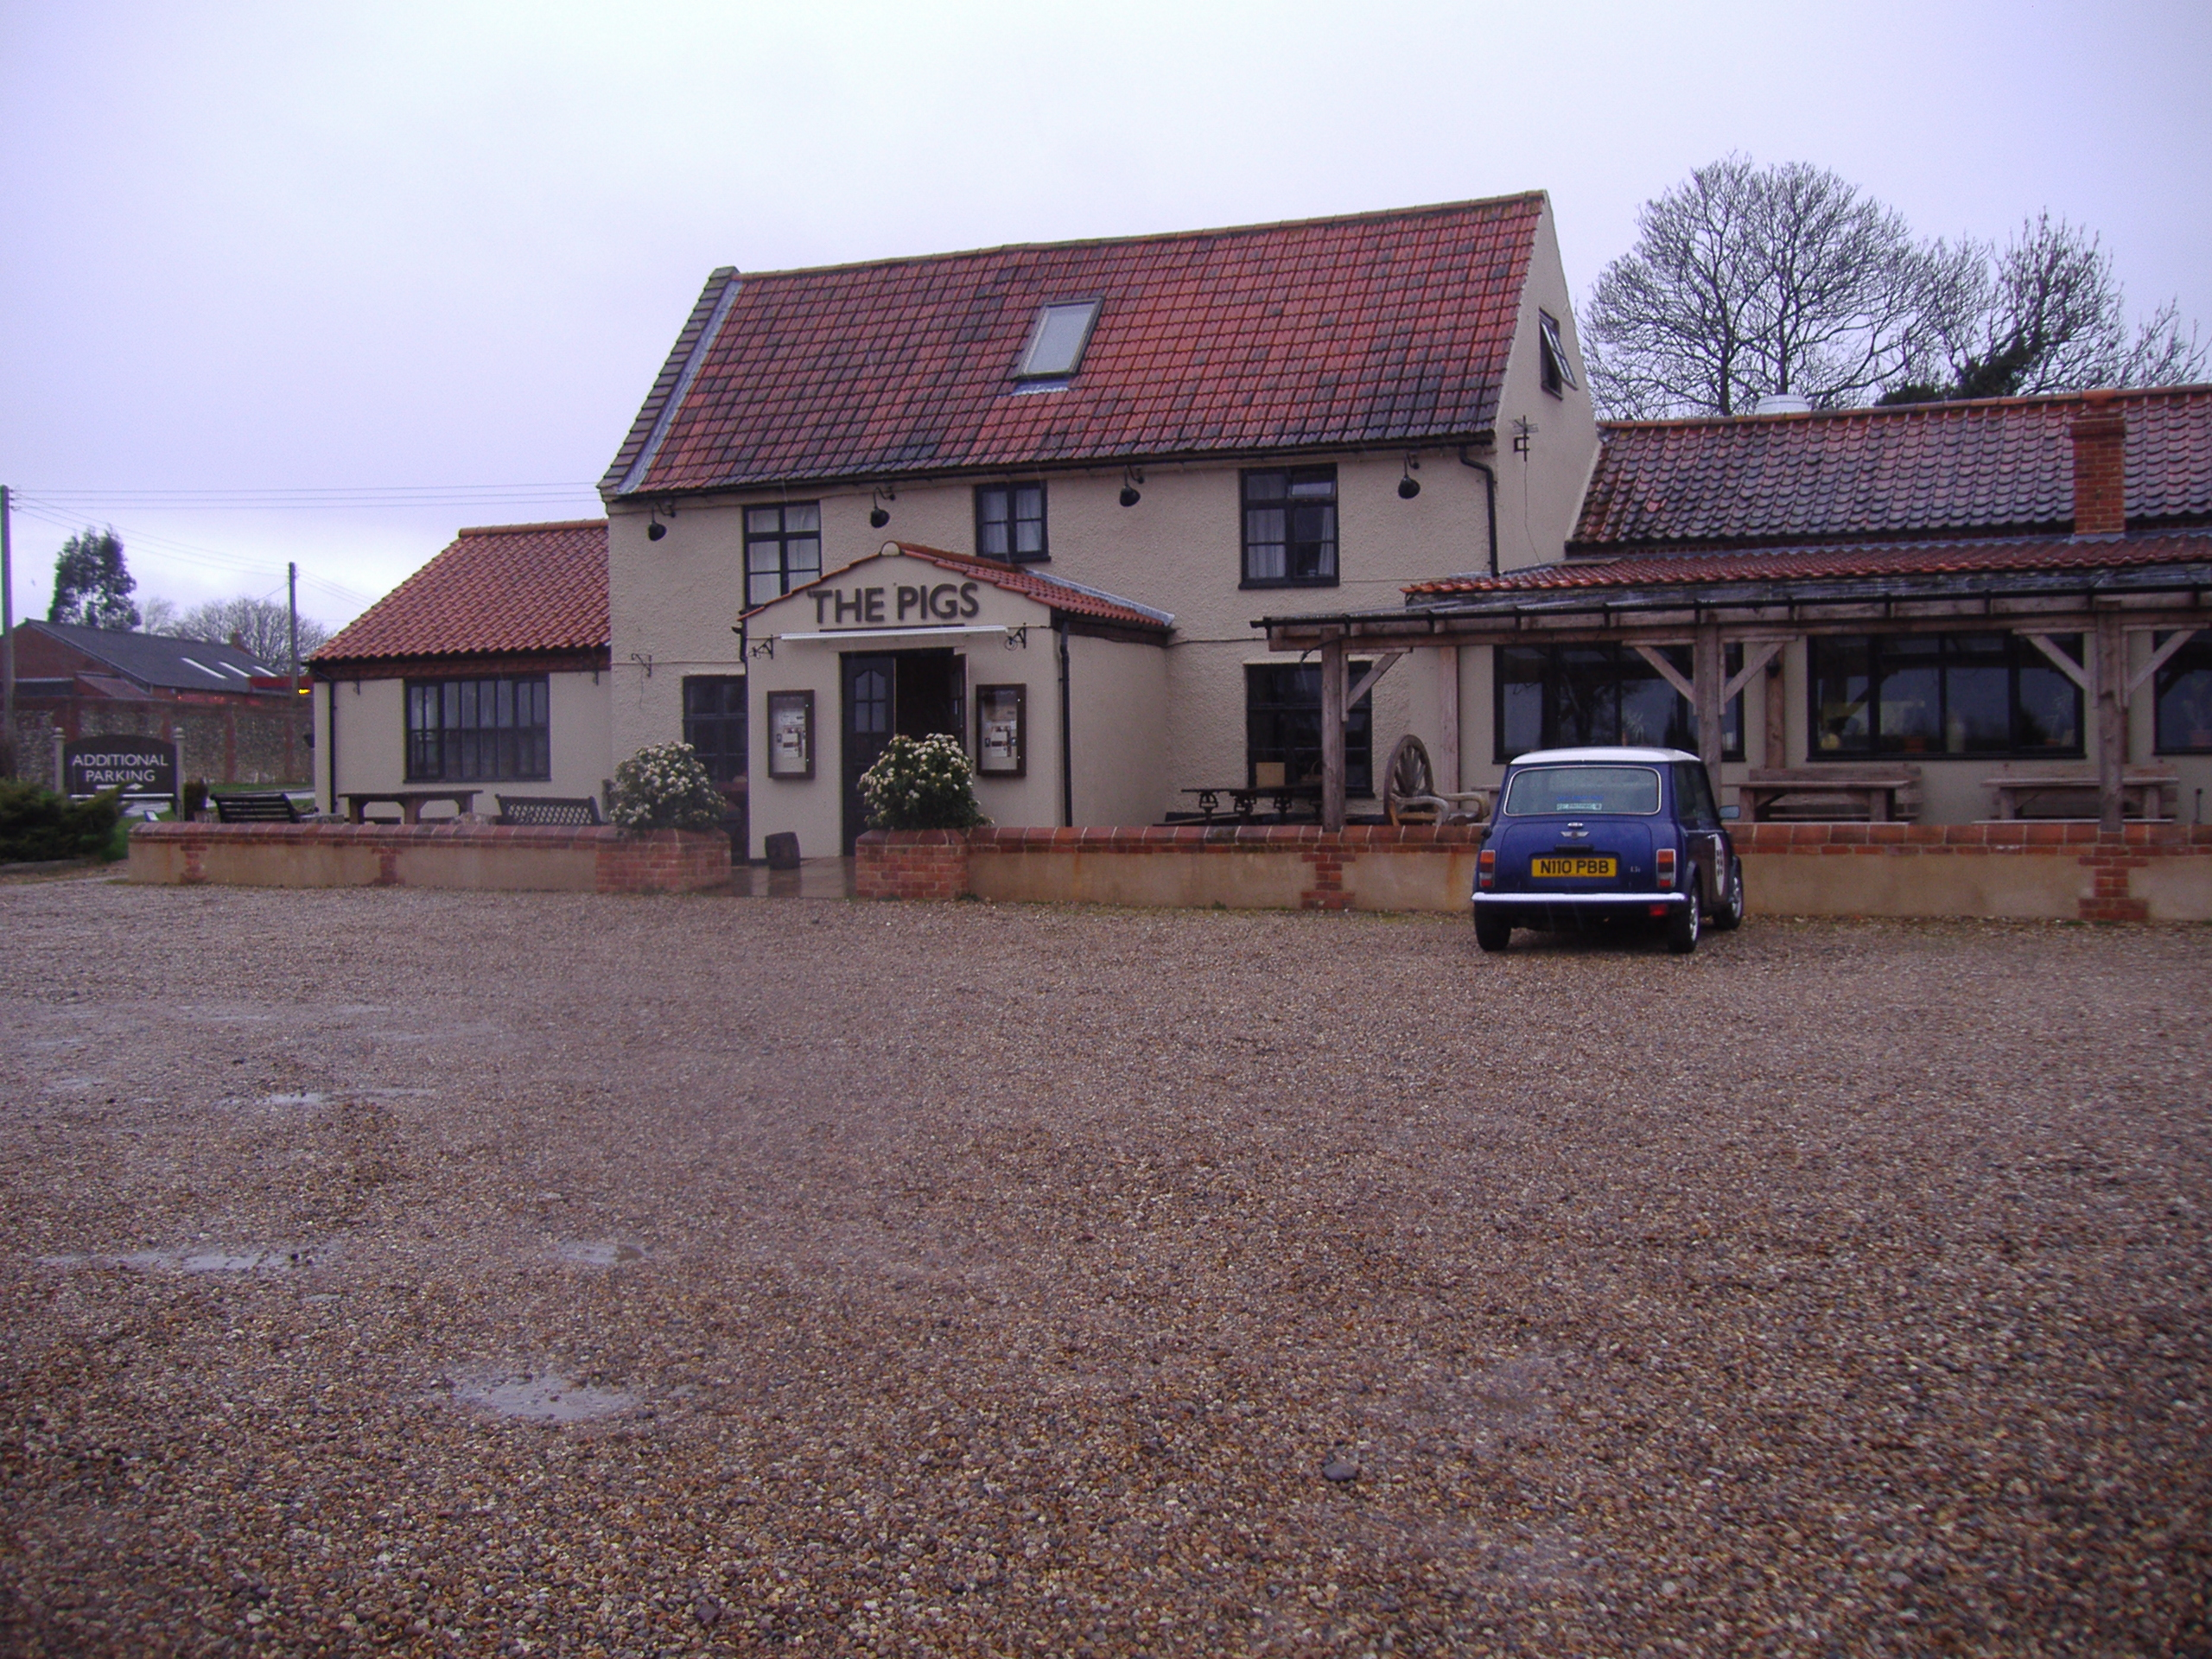 FileThe Pigs public house Edgefield Norfolk th March